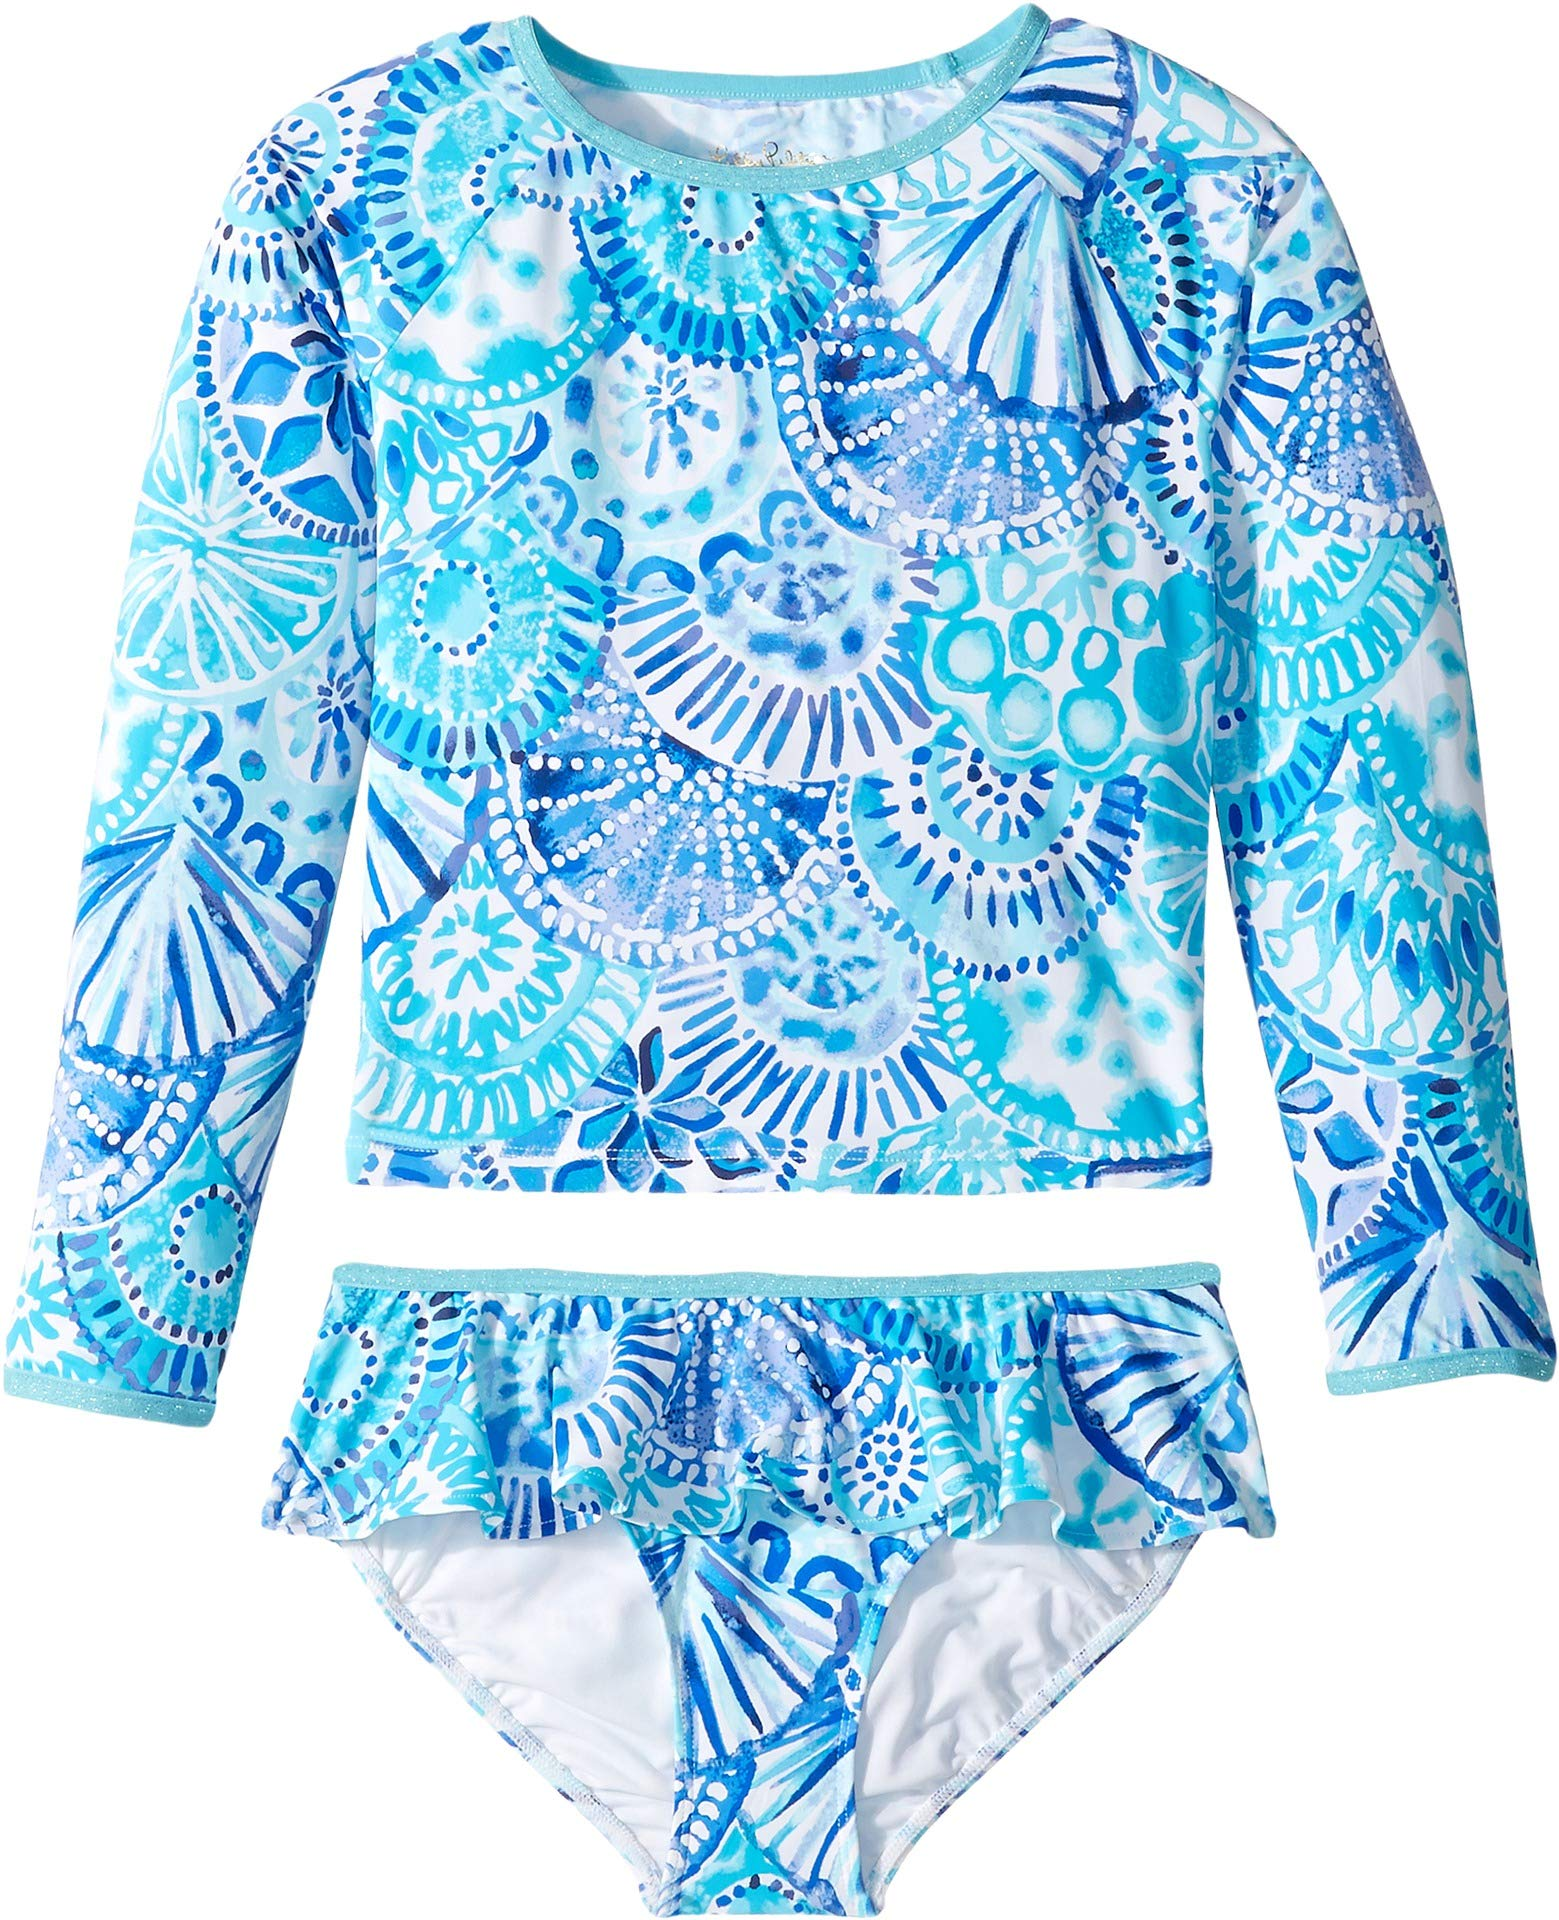 Lilly Pulitzer Kids Baby Girl's UPF 50+ Cora Rashguard Swim (Toddler/Little Kids/Big Kids) Turquoise Oasis Half Shell 3T